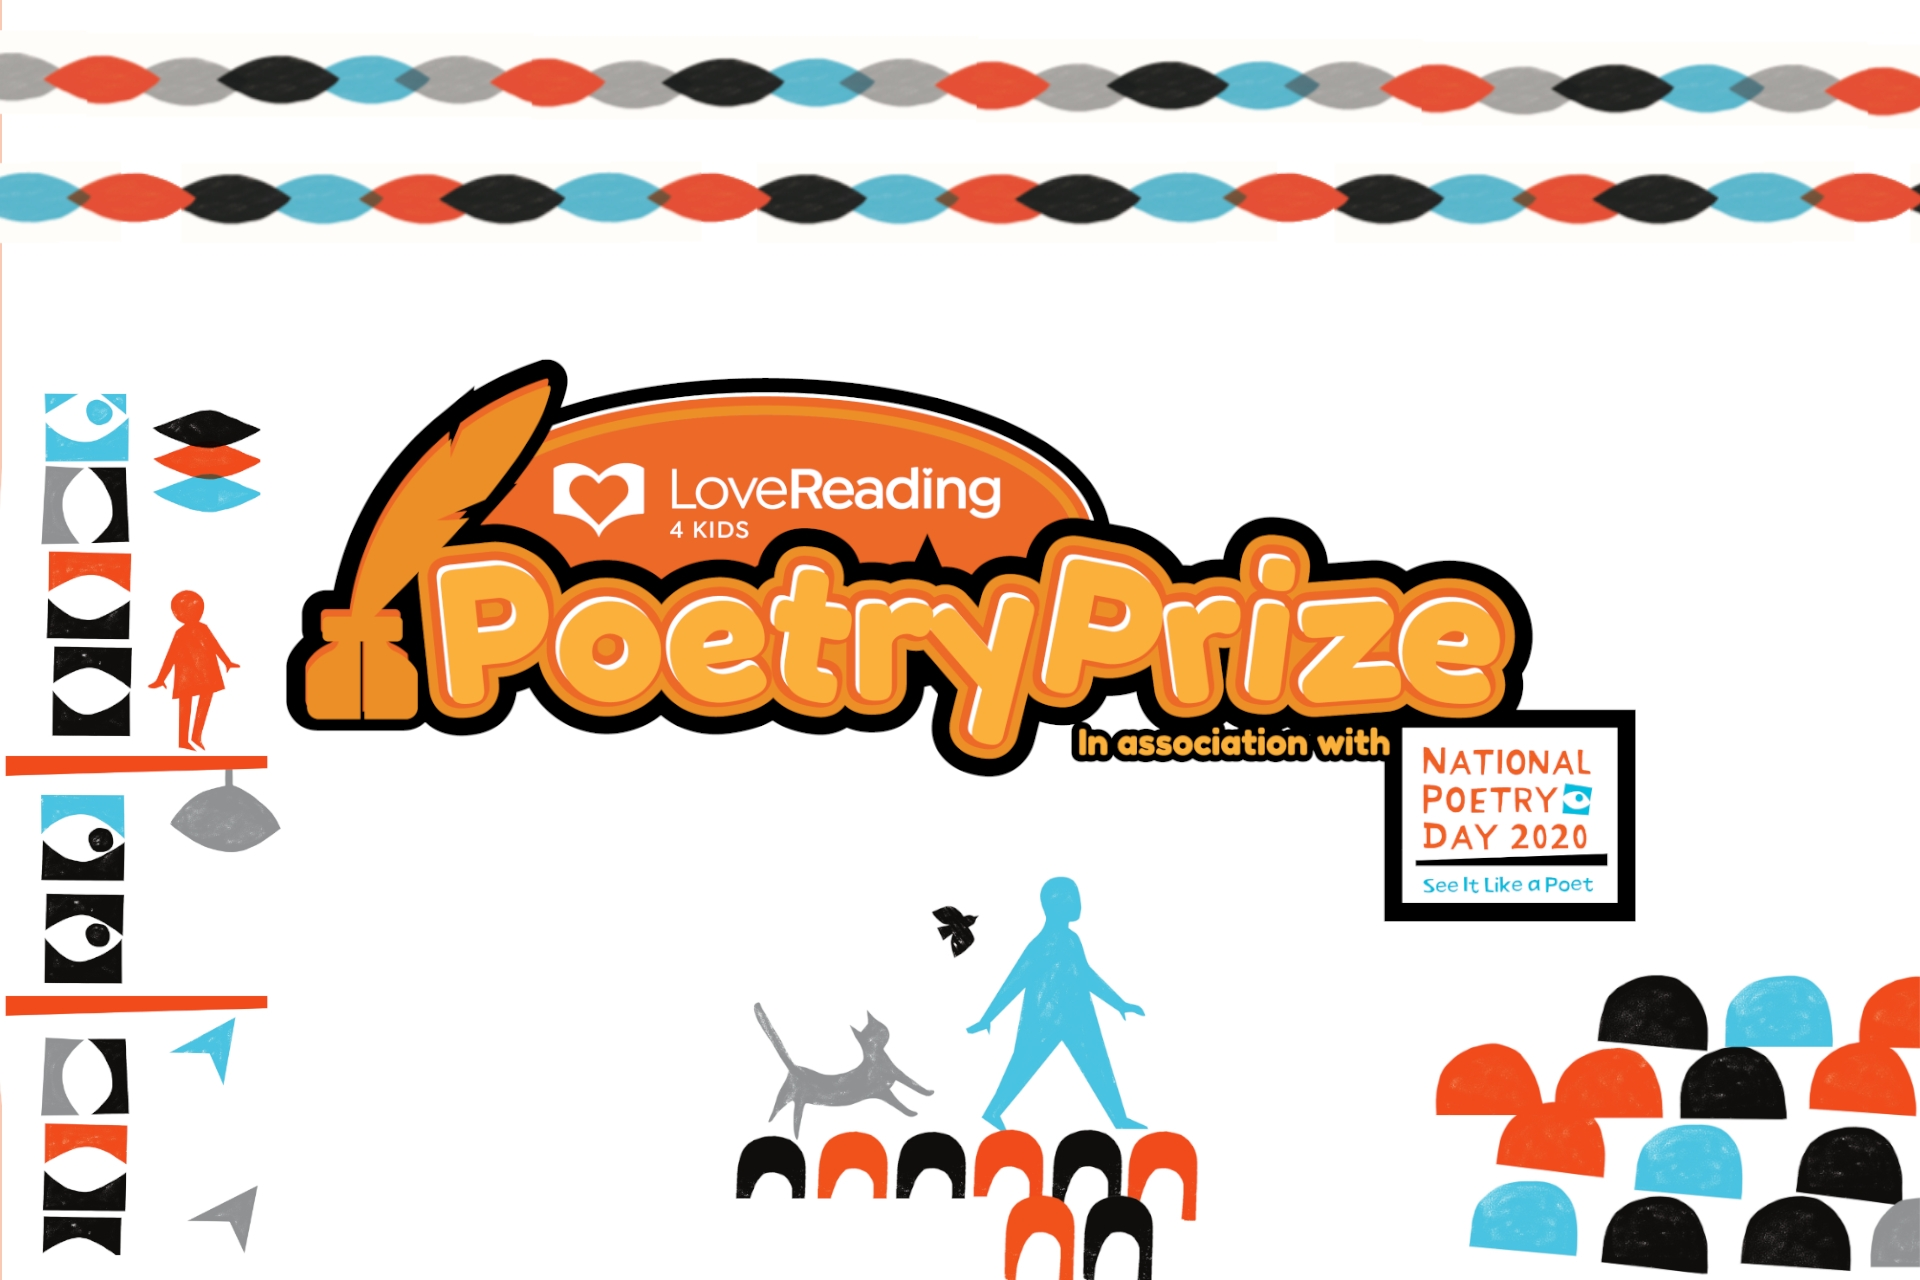 Calling All Aspiring Young Poets...